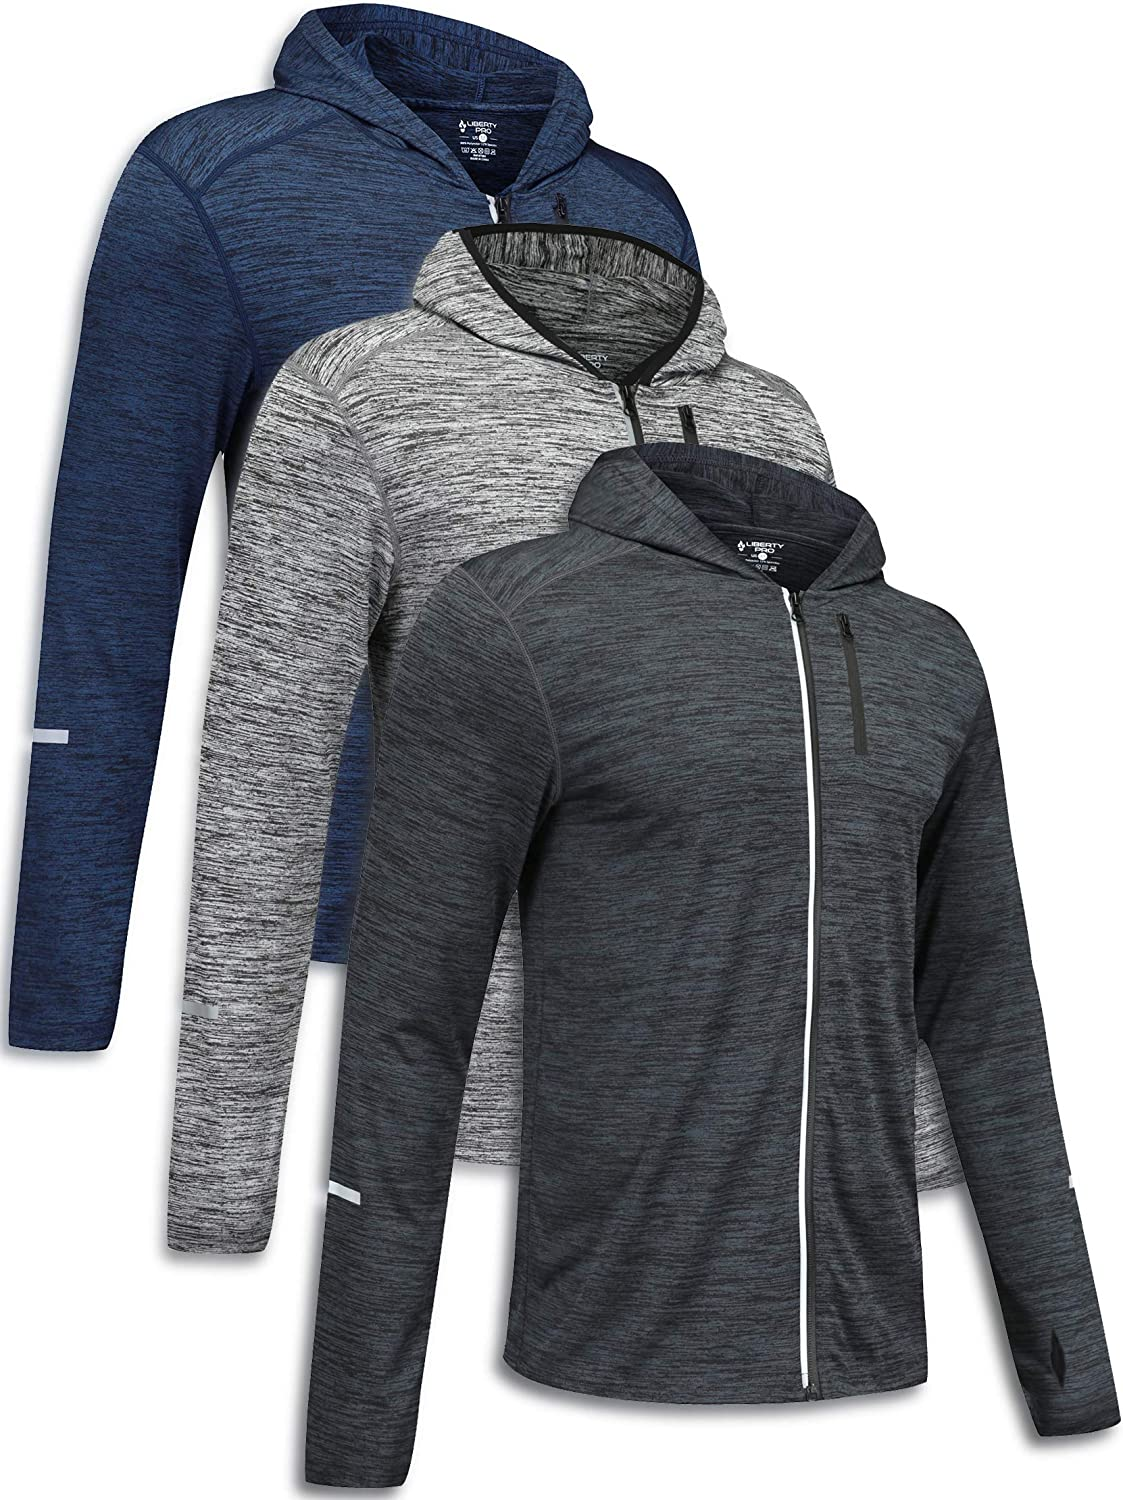 Athletic Running Cycling Gym Tops Bulk Bundle 3 Pack Mens Long Sleeve Active Zipper Shirts Quick Dry Pullovers